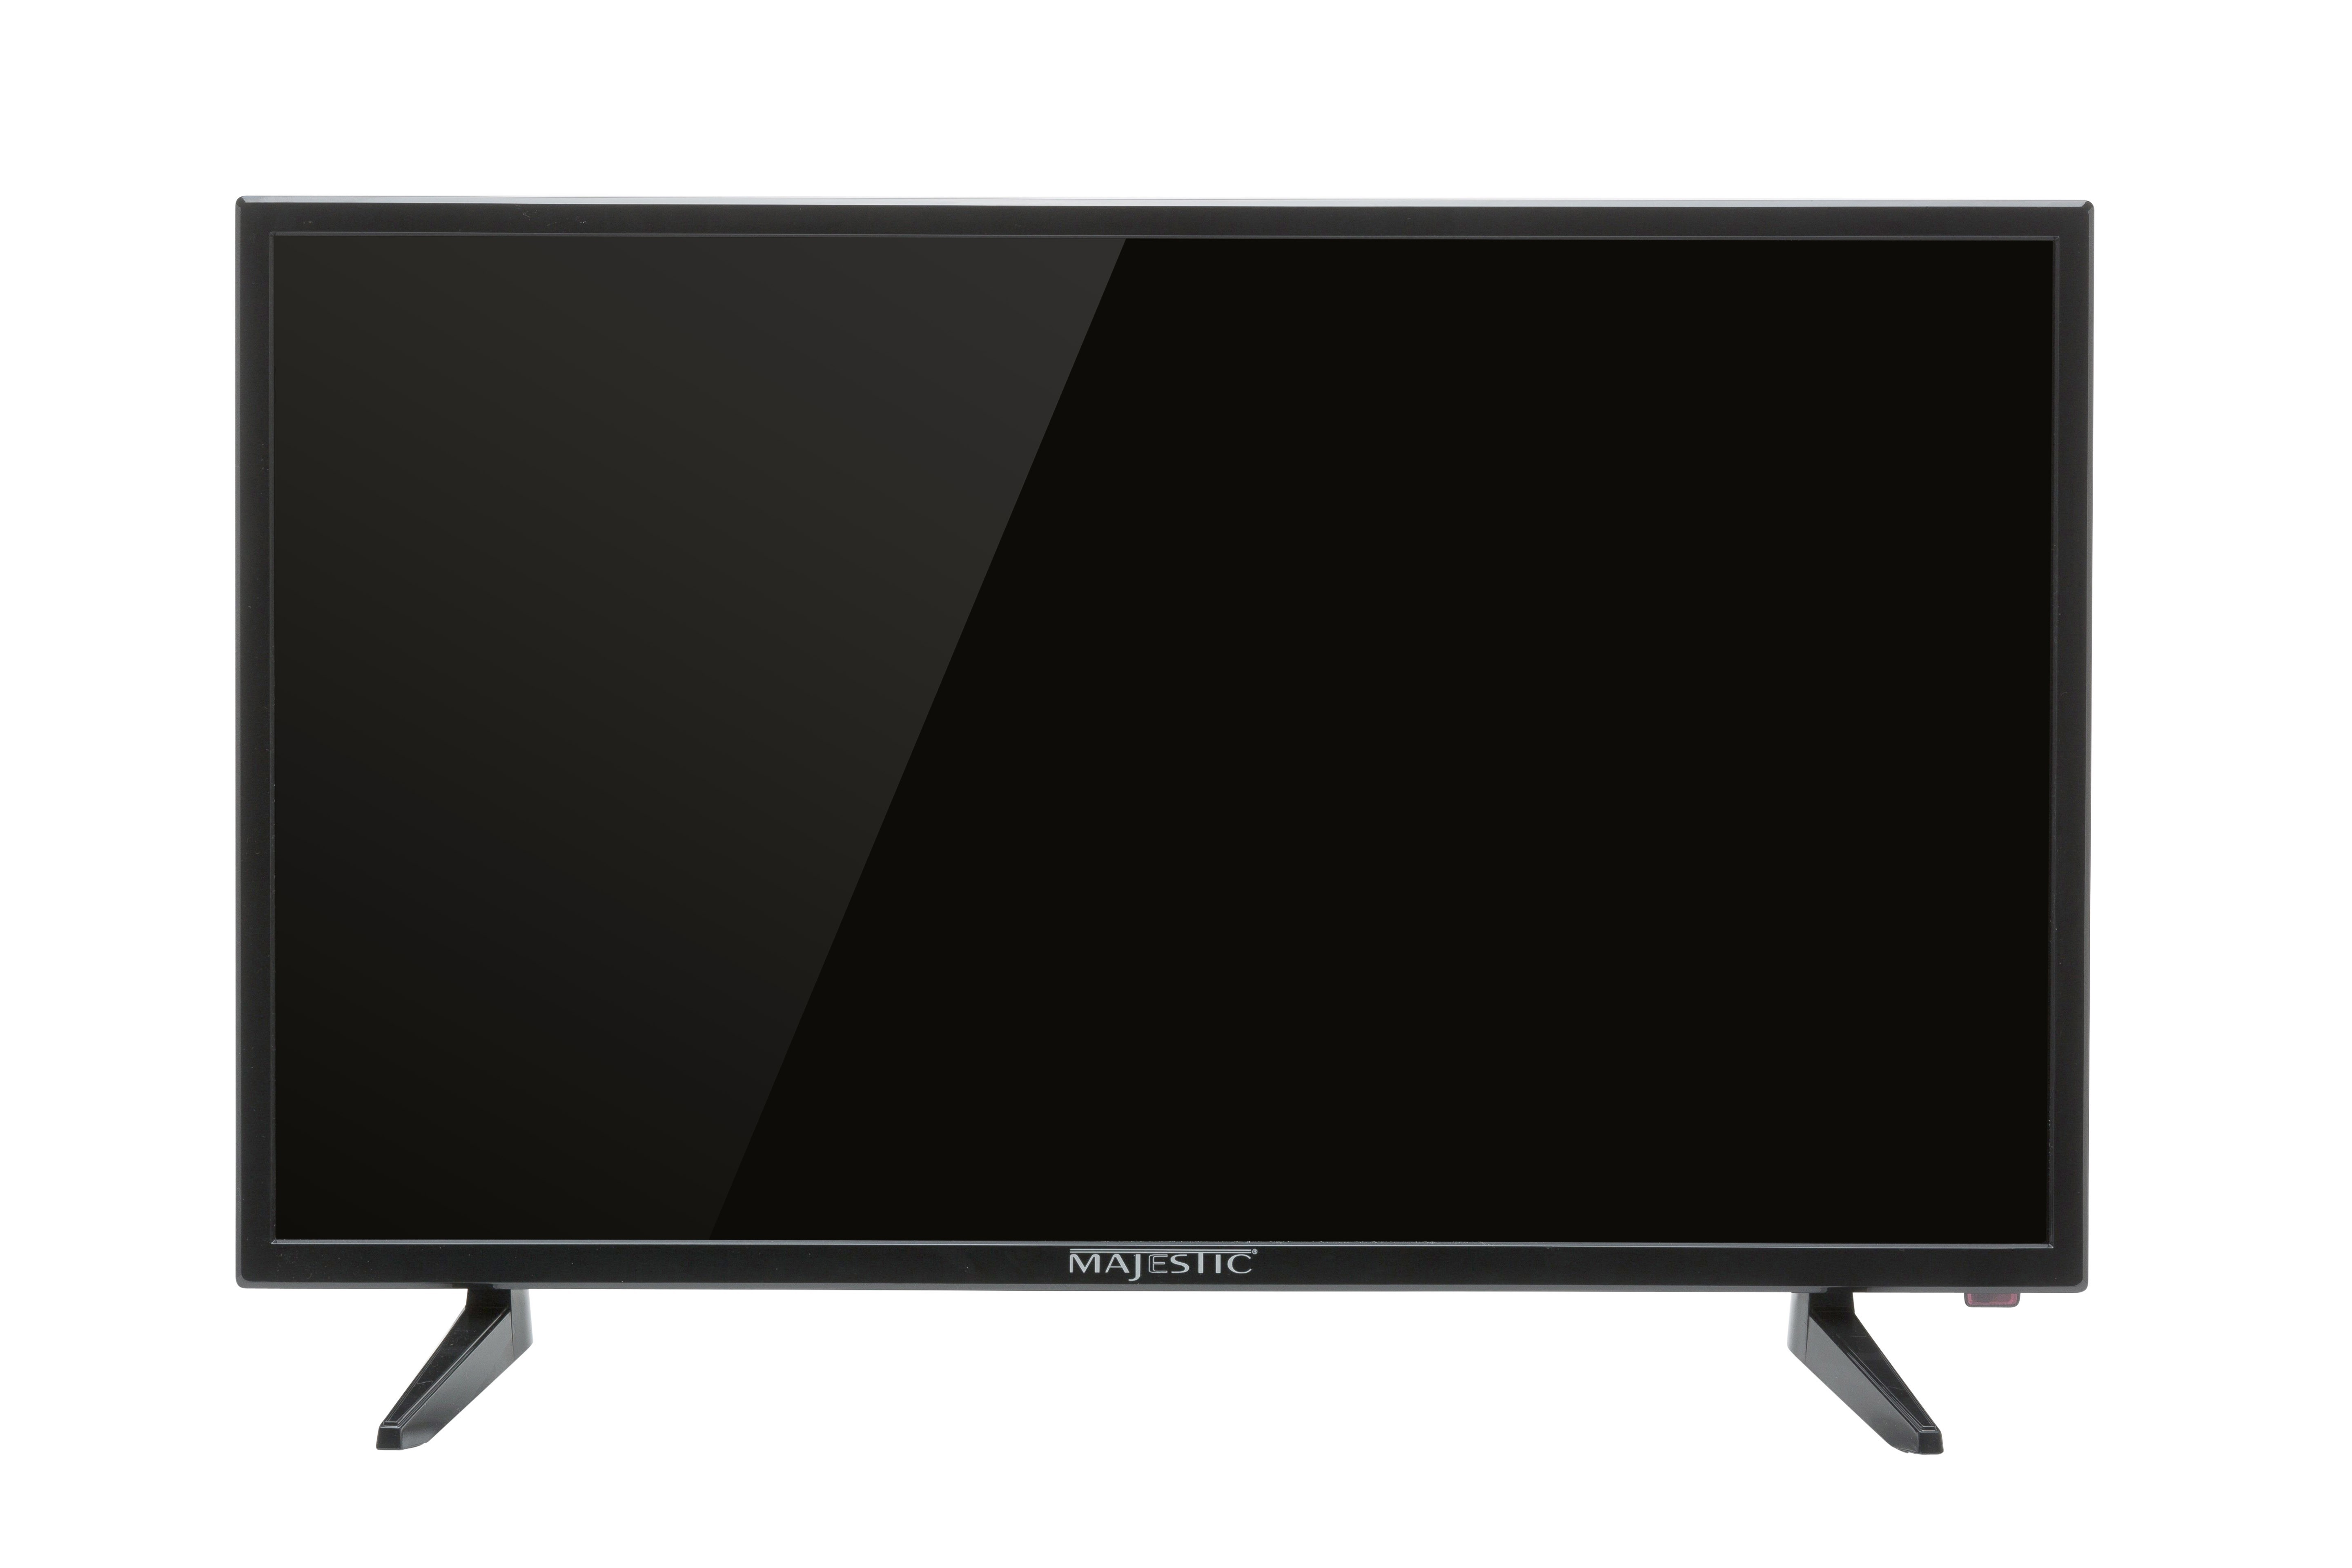 Majestic Launches New 12 Volt 32-Inch LED TV for Marine and RV Industry Packed With Features